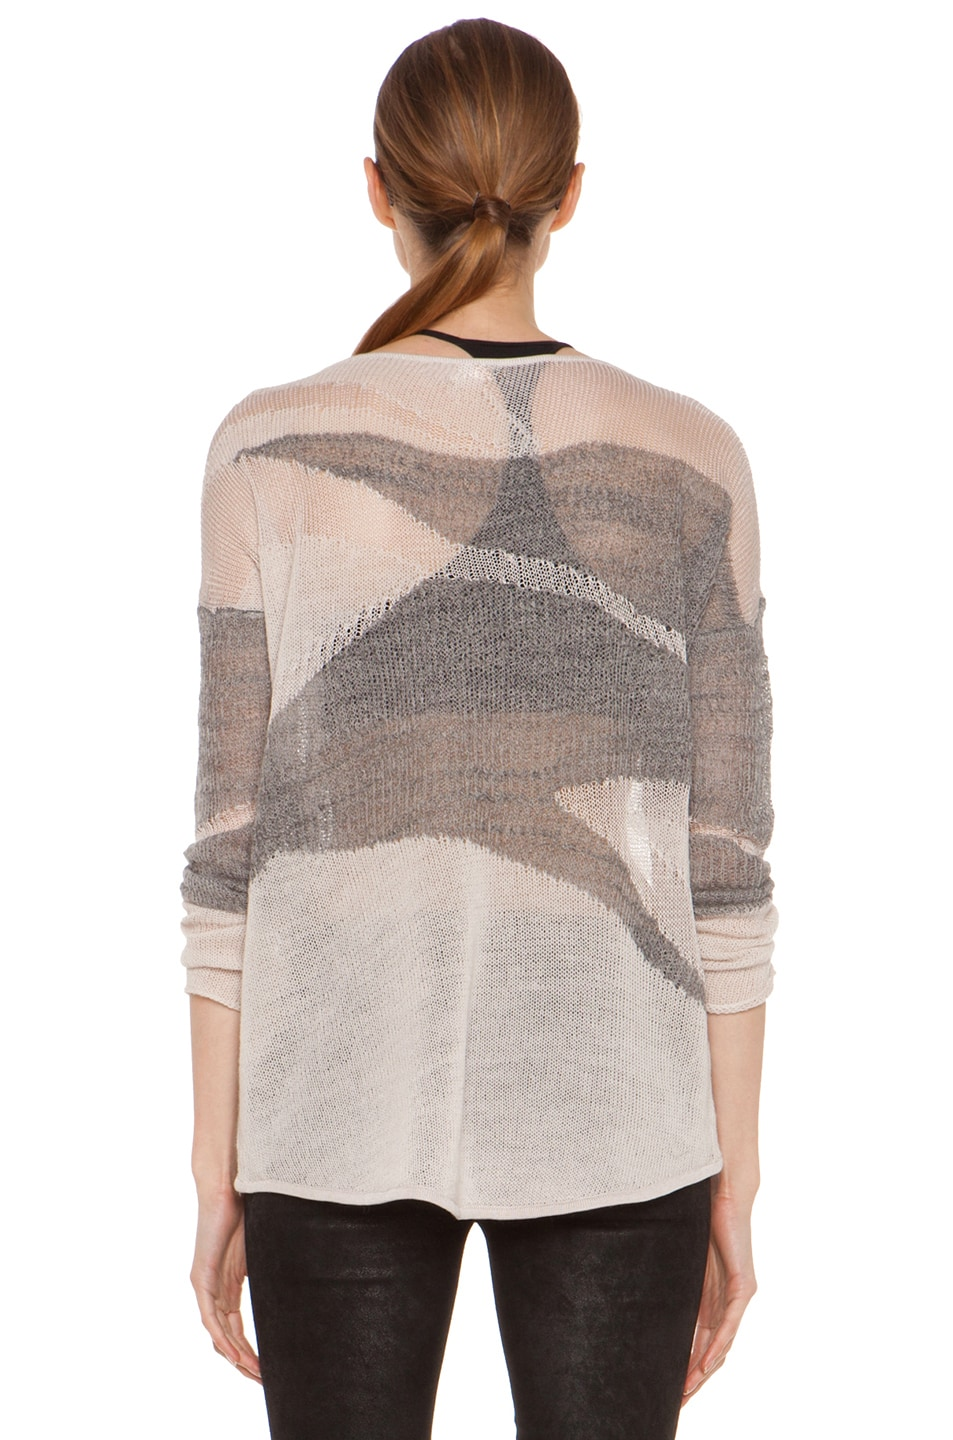 Image 4 of Helmut Lang Merging Texture Boxy Pullover Sweater in Nude